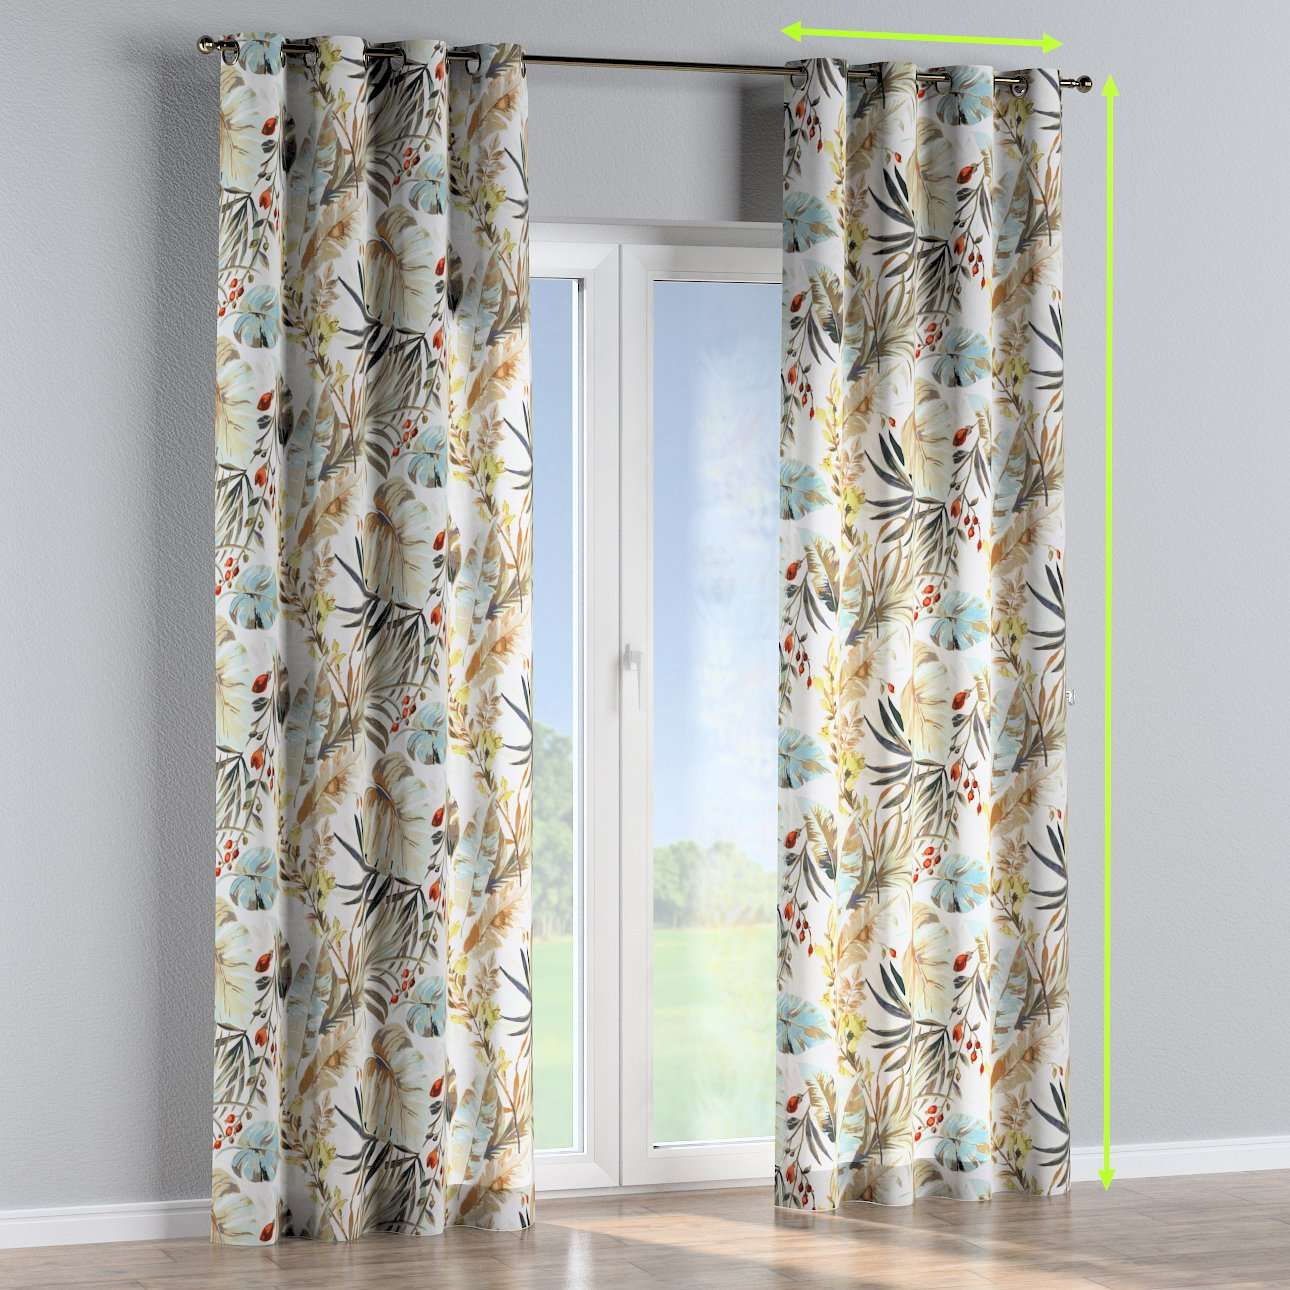 Eyelet curtains in collection Urban Jungle, fabric: 141-42